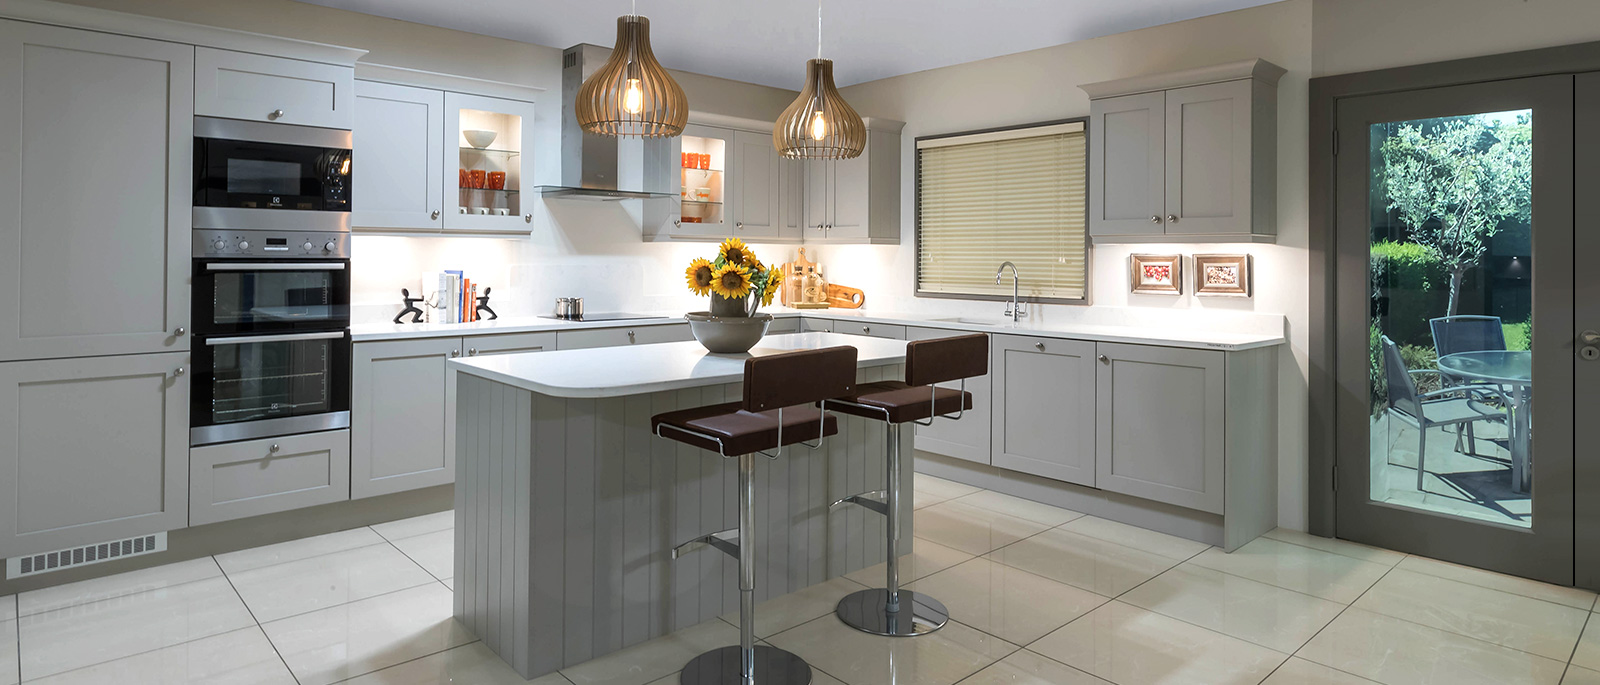 Nolan Kitchens New Designer Contemporary Ireland Kitchen Design Ed